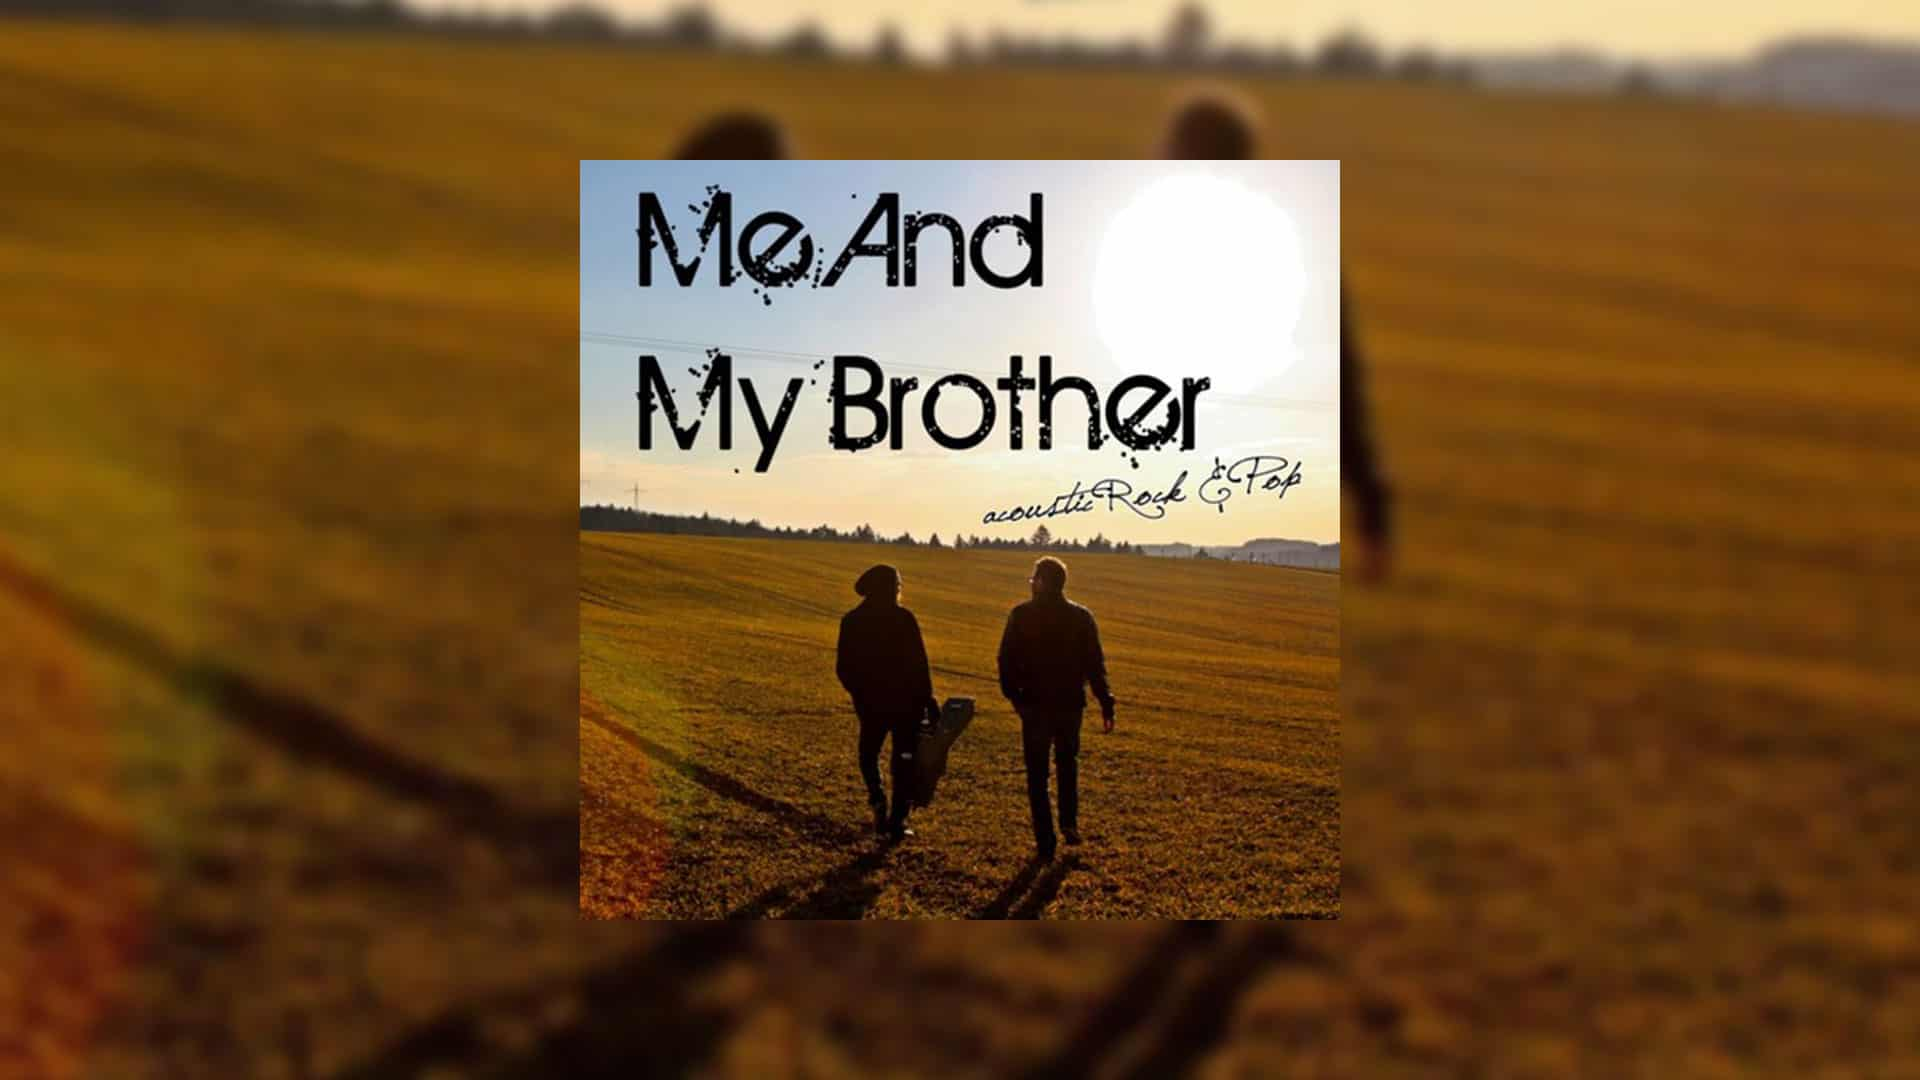 Live: Me and my Brother (Acoustic Rock)